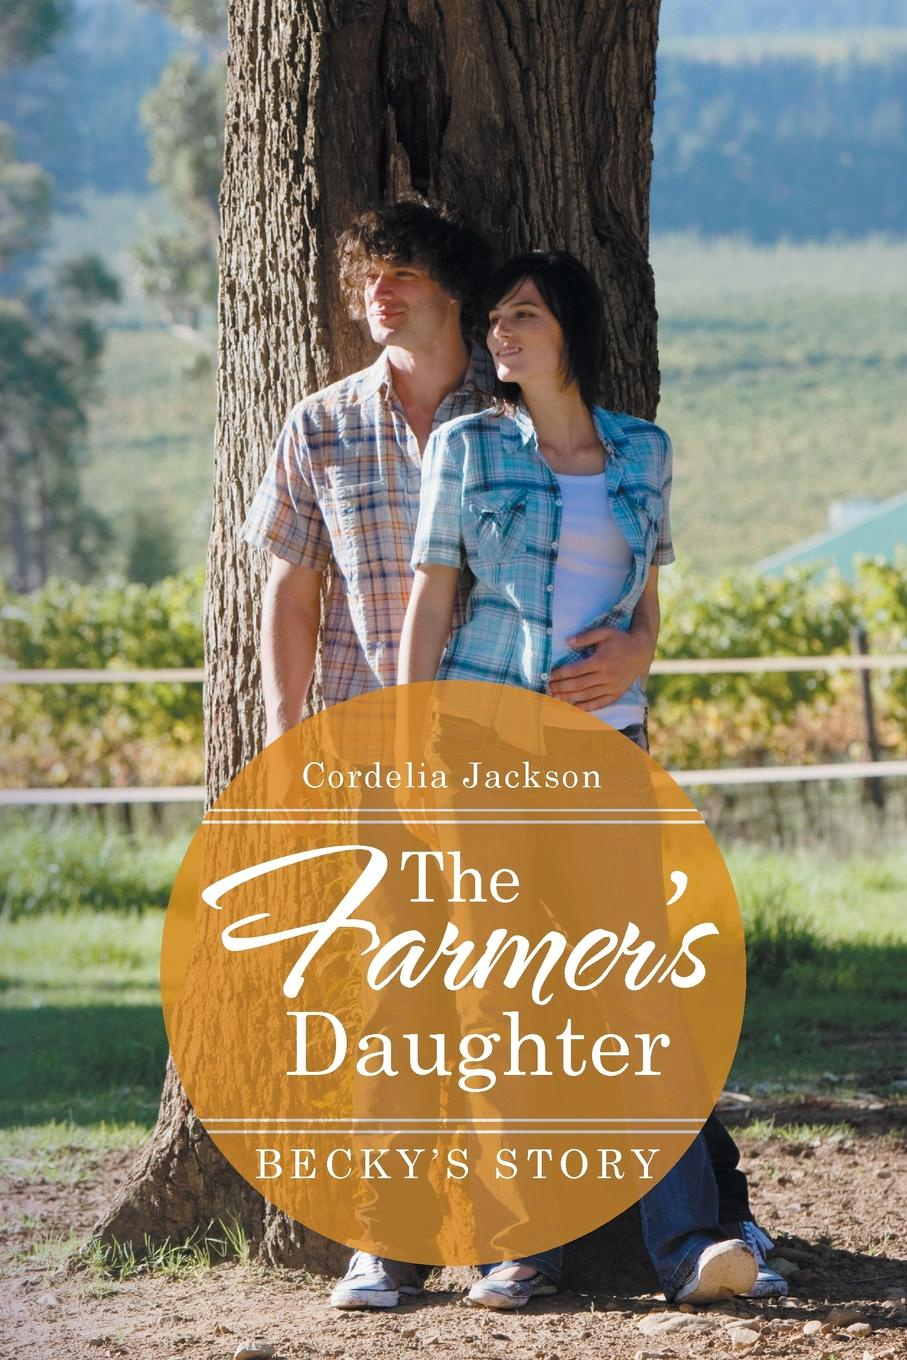 Cordelia Jackson The Farmer's Daughter. Becky's Story burger s daughter